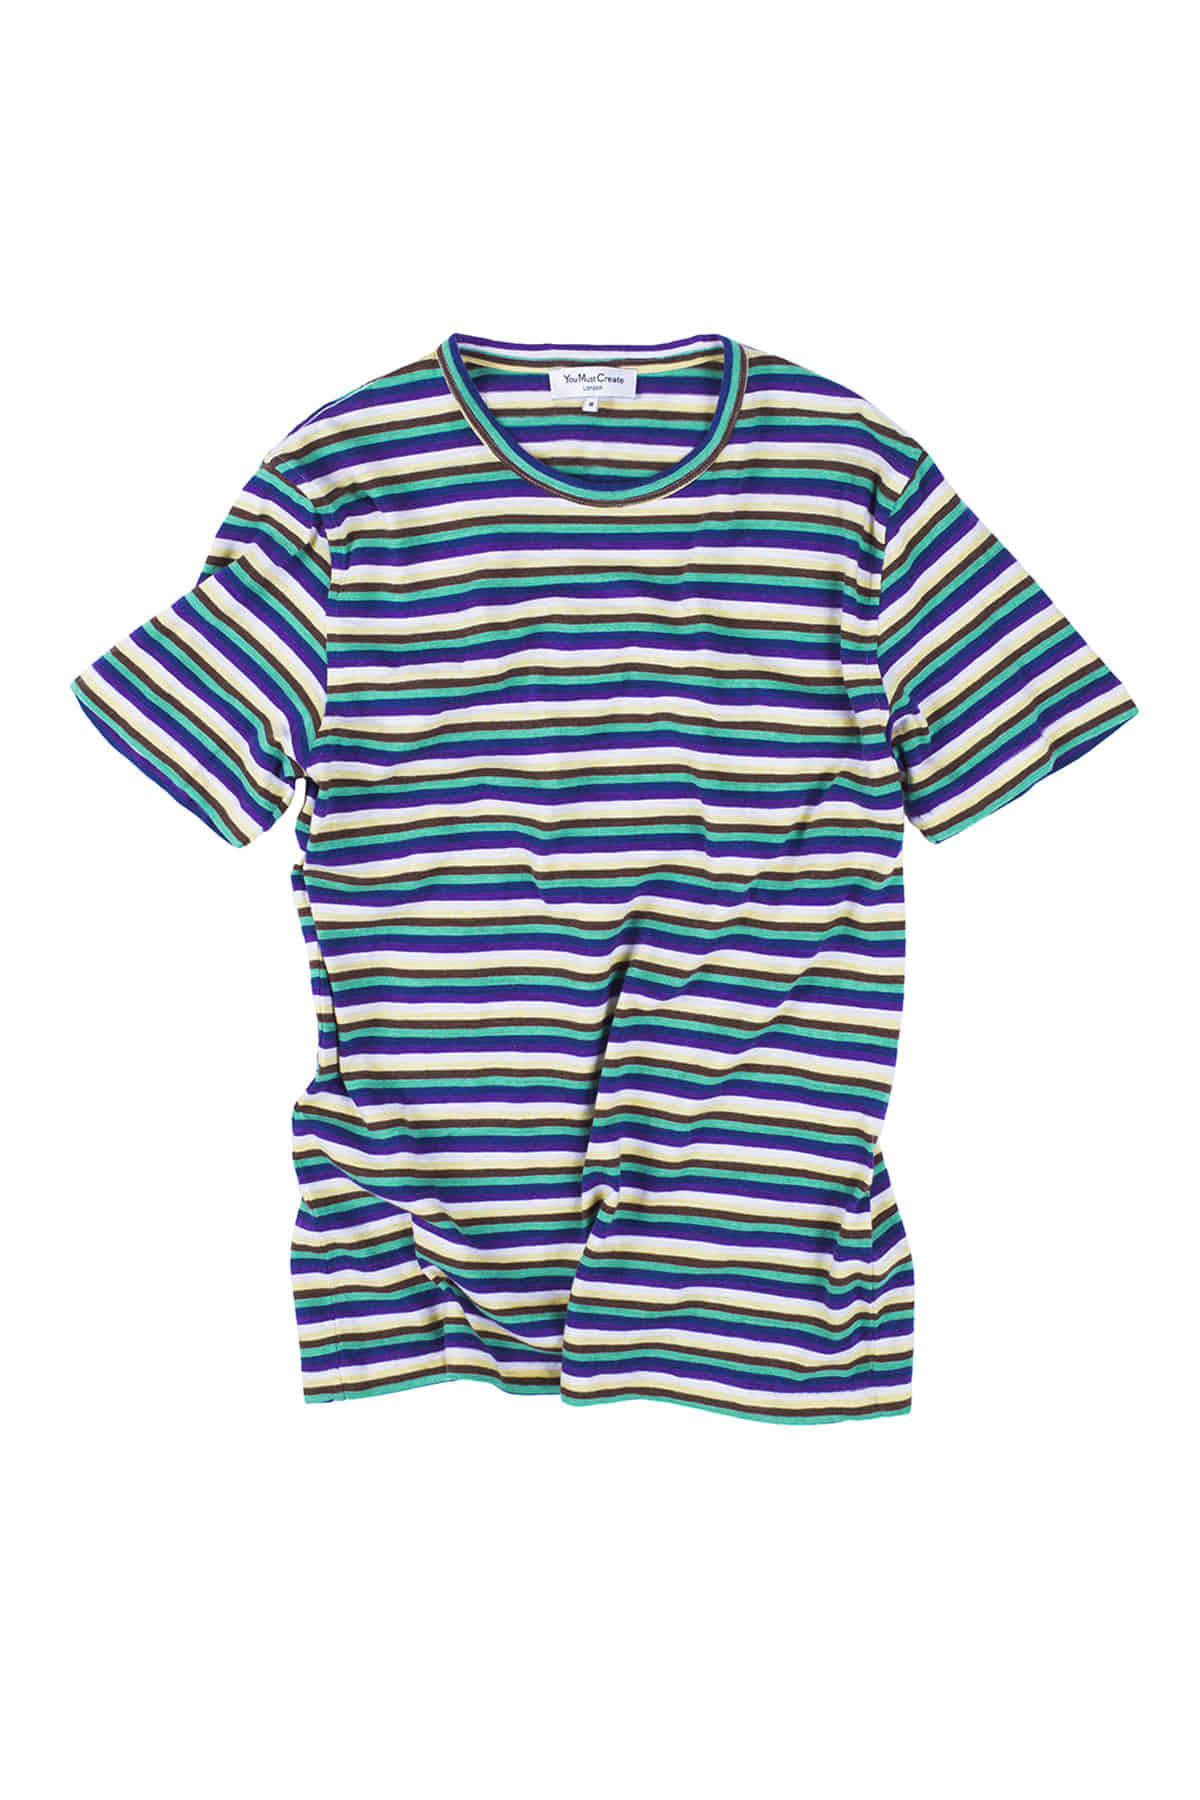 YMC : Wild Ones Tee (Stripe)